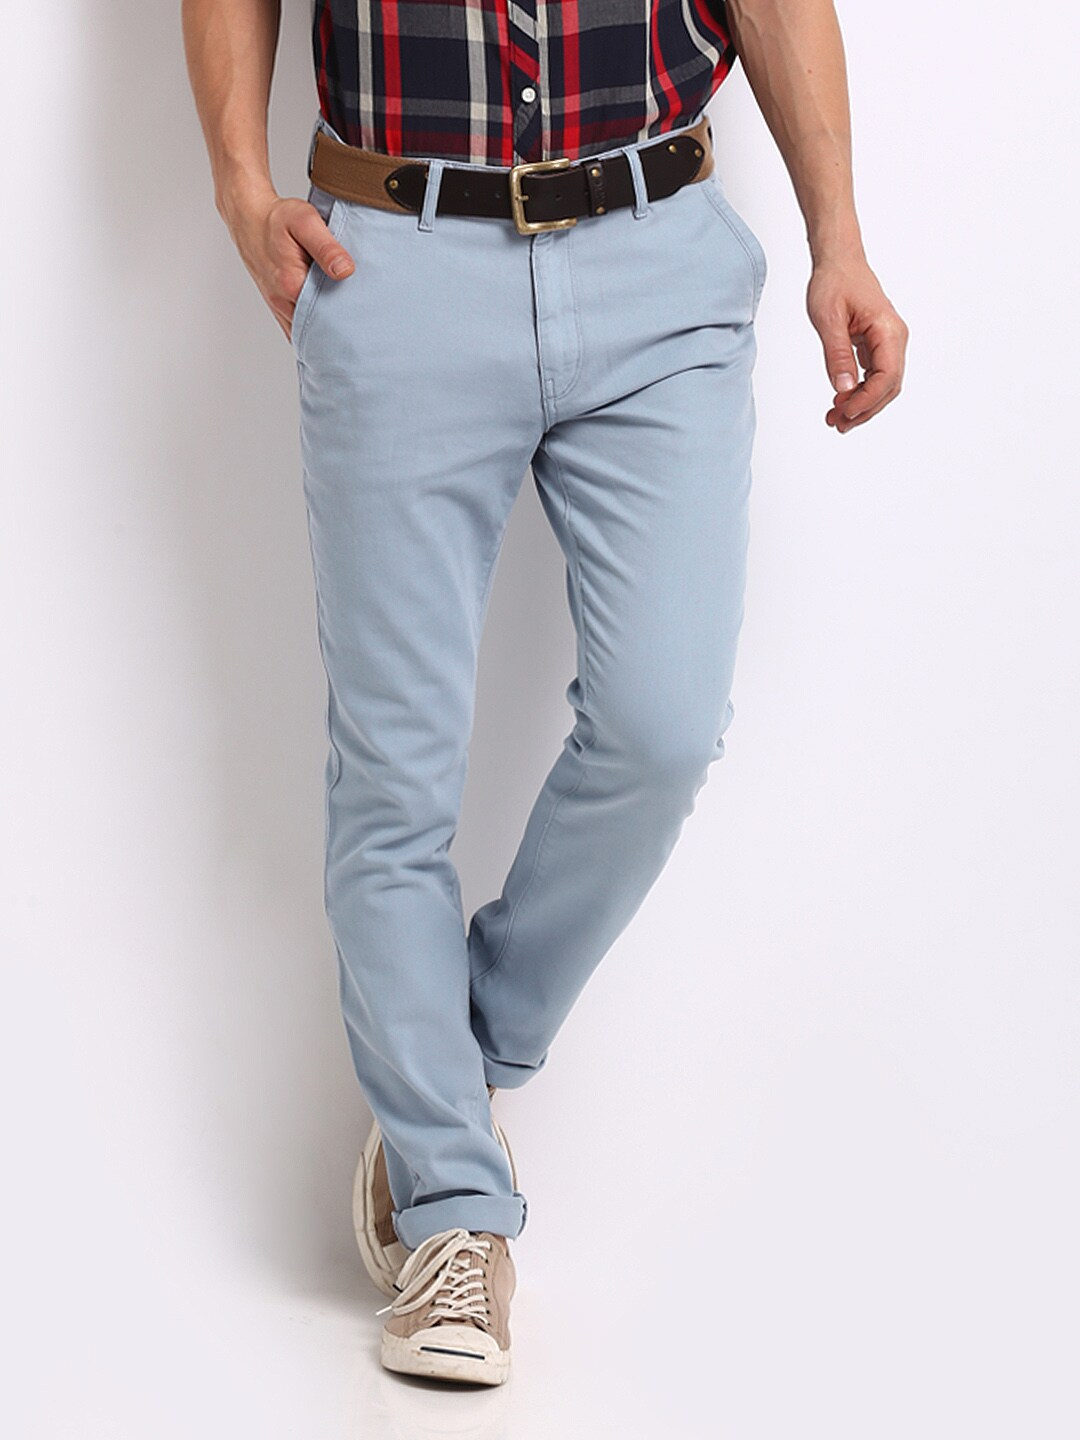 Find Men's Light Blue Jeans, Women's Light Blue Jeans and Kids Light Blue Jeans at Macy's. Macy's Presents: The Edit - A curated mix of fashion and inspiration Check It Out Free Shipping with $49 purchase + Free Store Pickup.